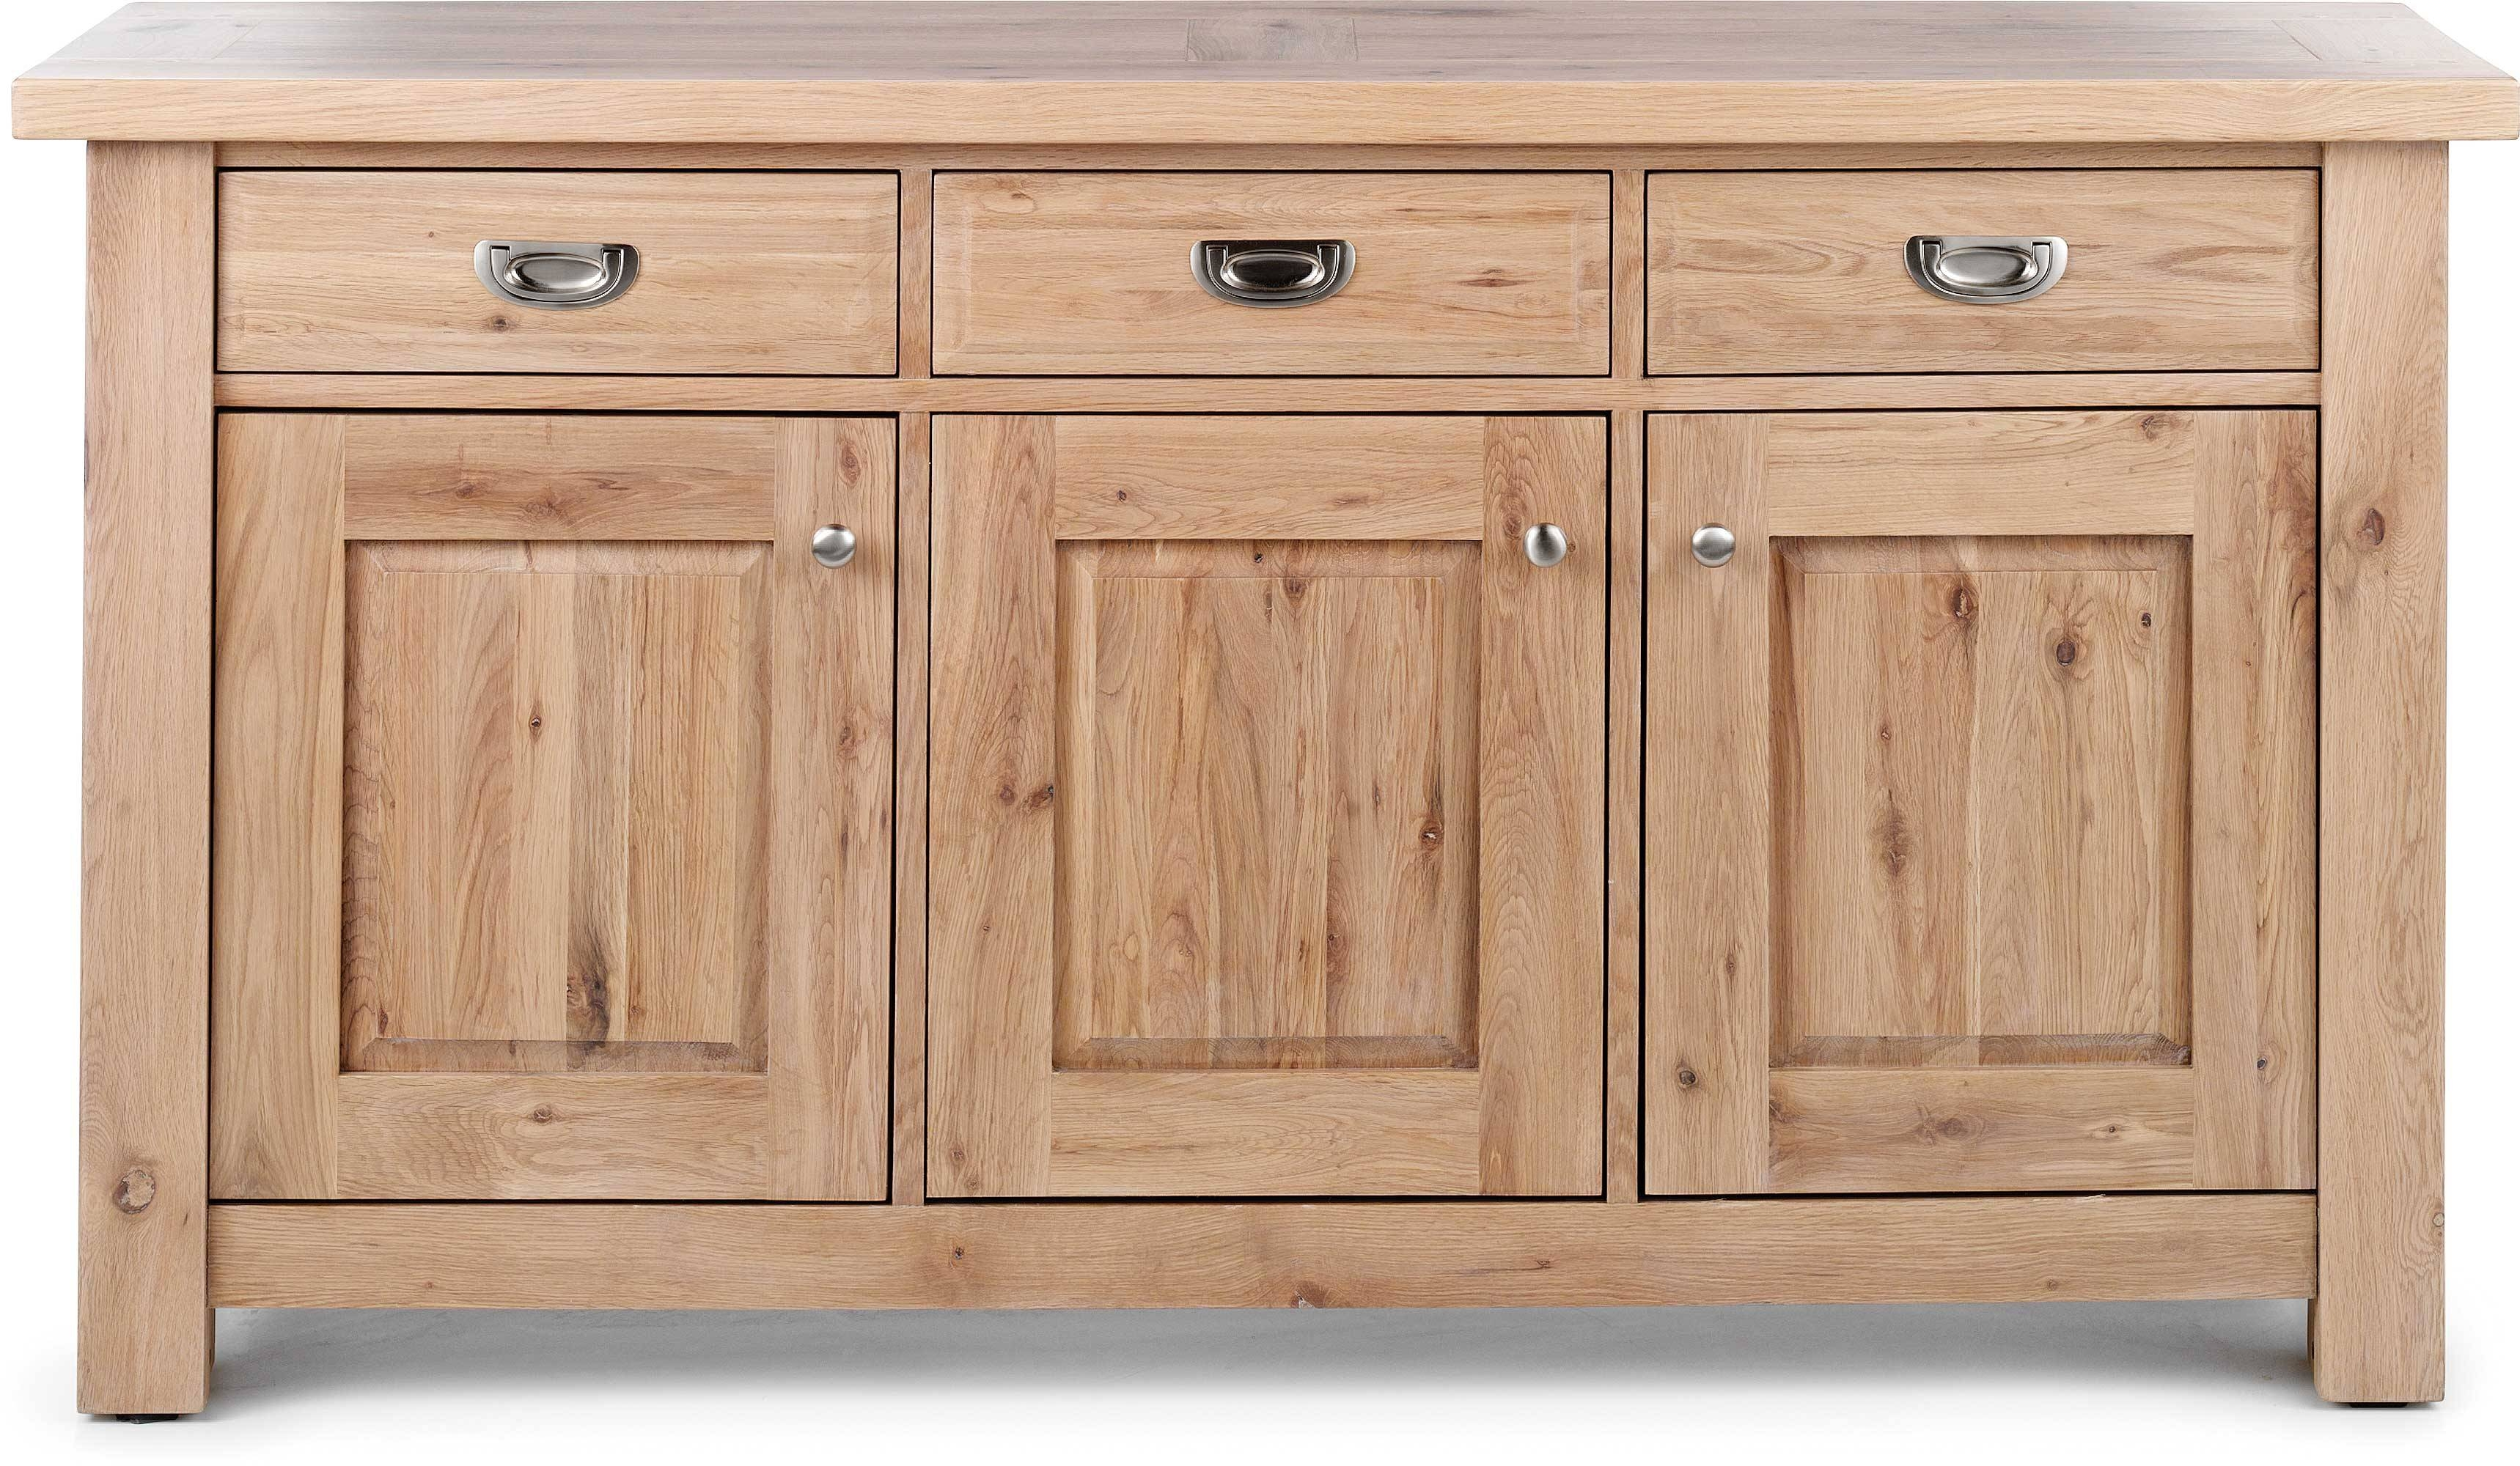 Sideboards – Cheshire Furniture Outlet In Light Oak Sideboards (View 18 of 20)